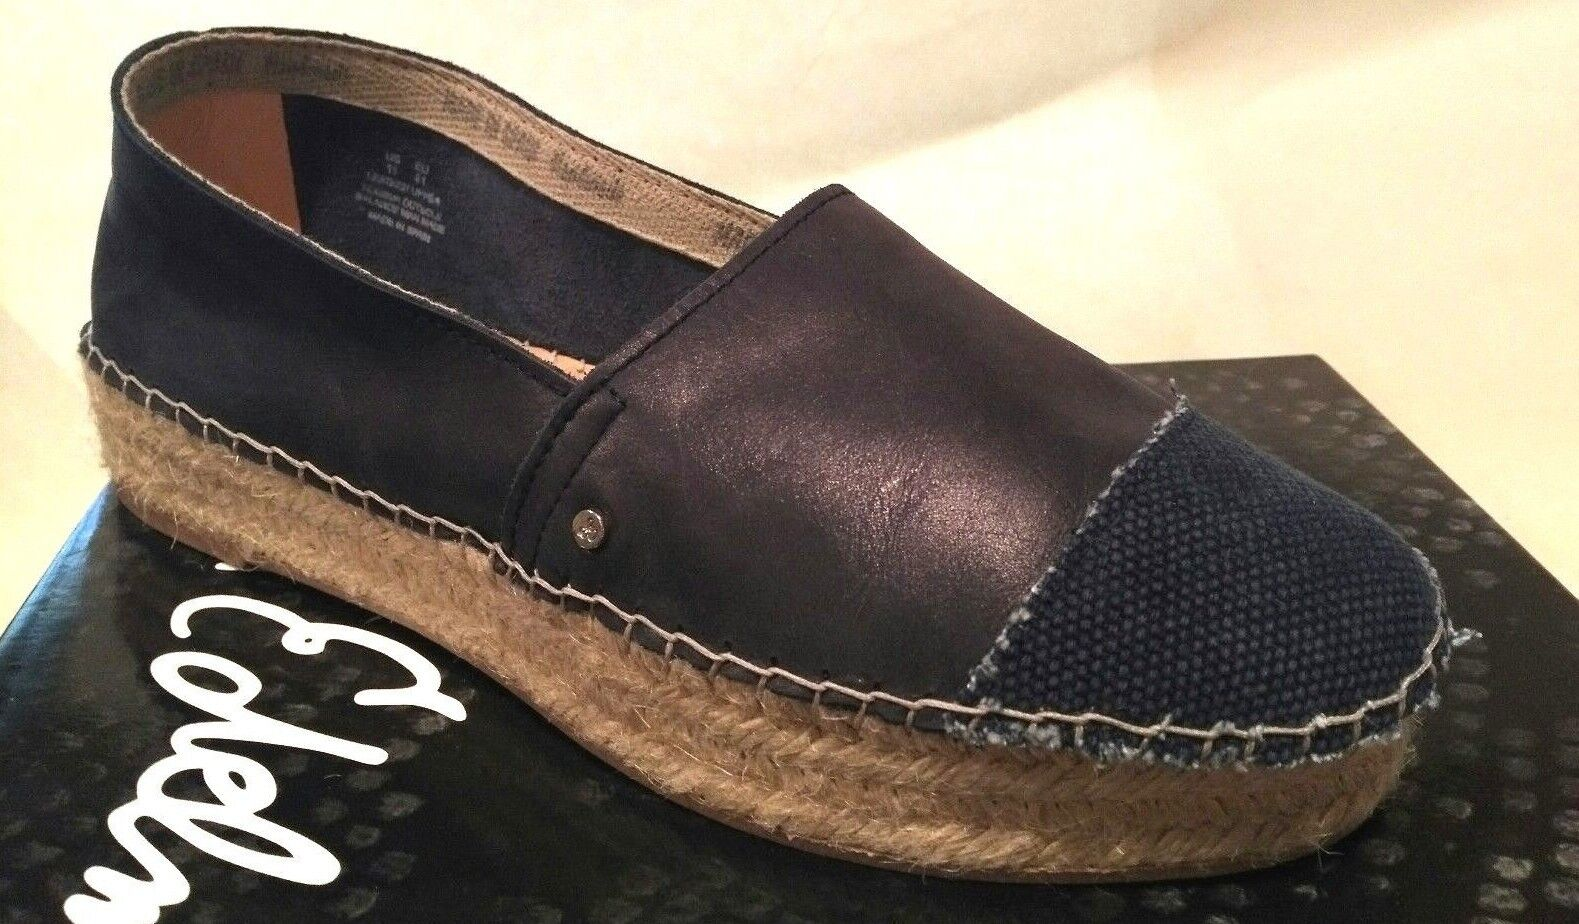 New  Sam Edelman Leather Platform Espadrille Flat 41 10 NAVY Handmade Spain  190